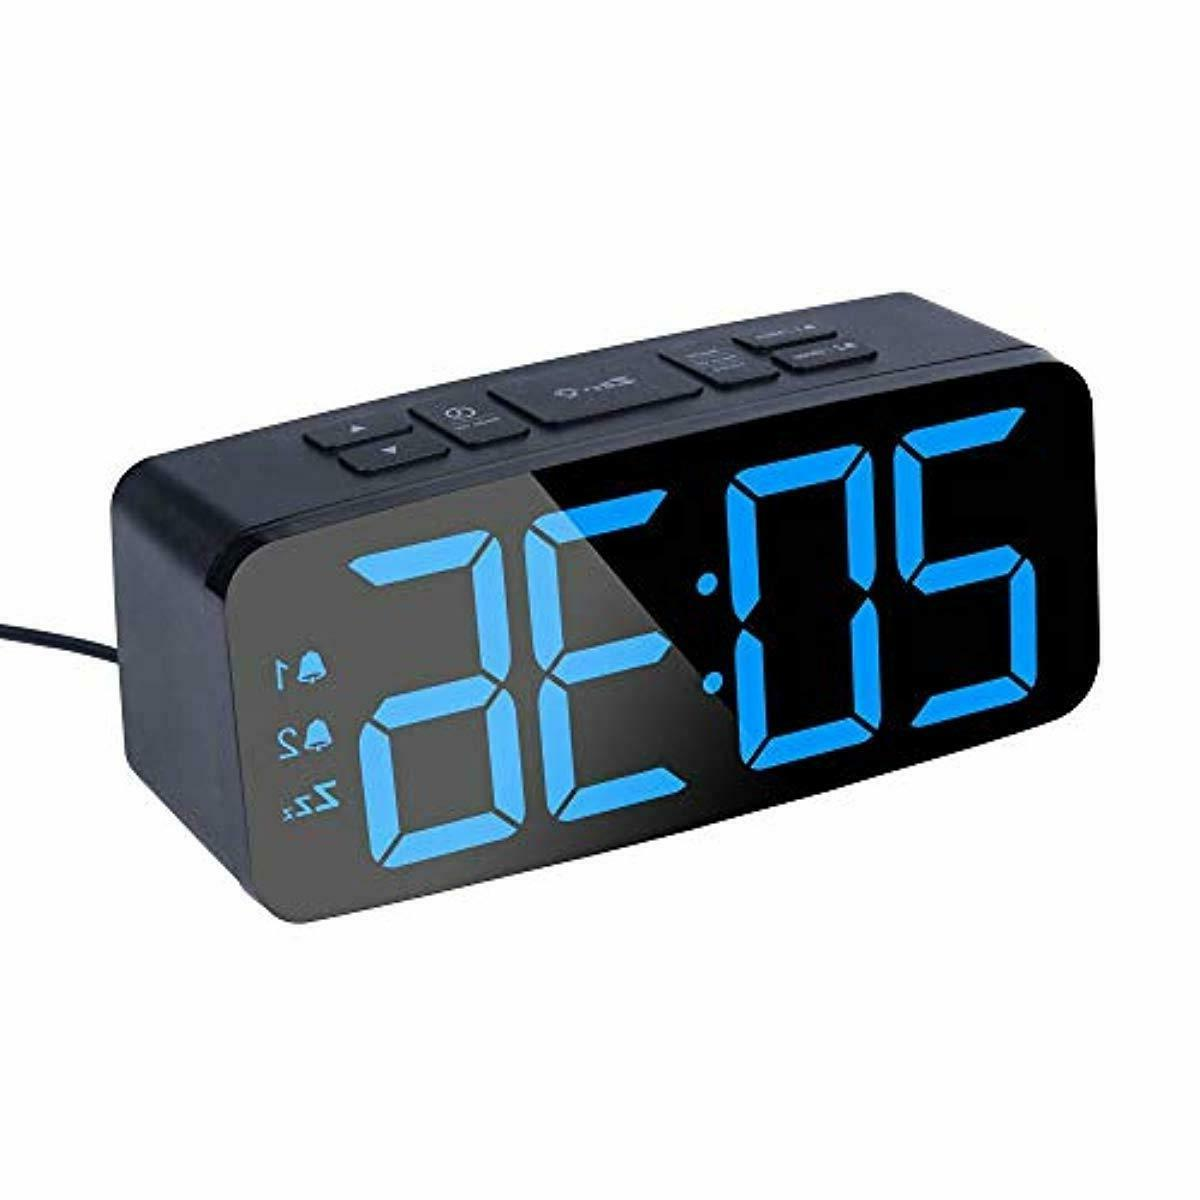 Digital Alarm Clock with USB Charger Brightness Bedroom